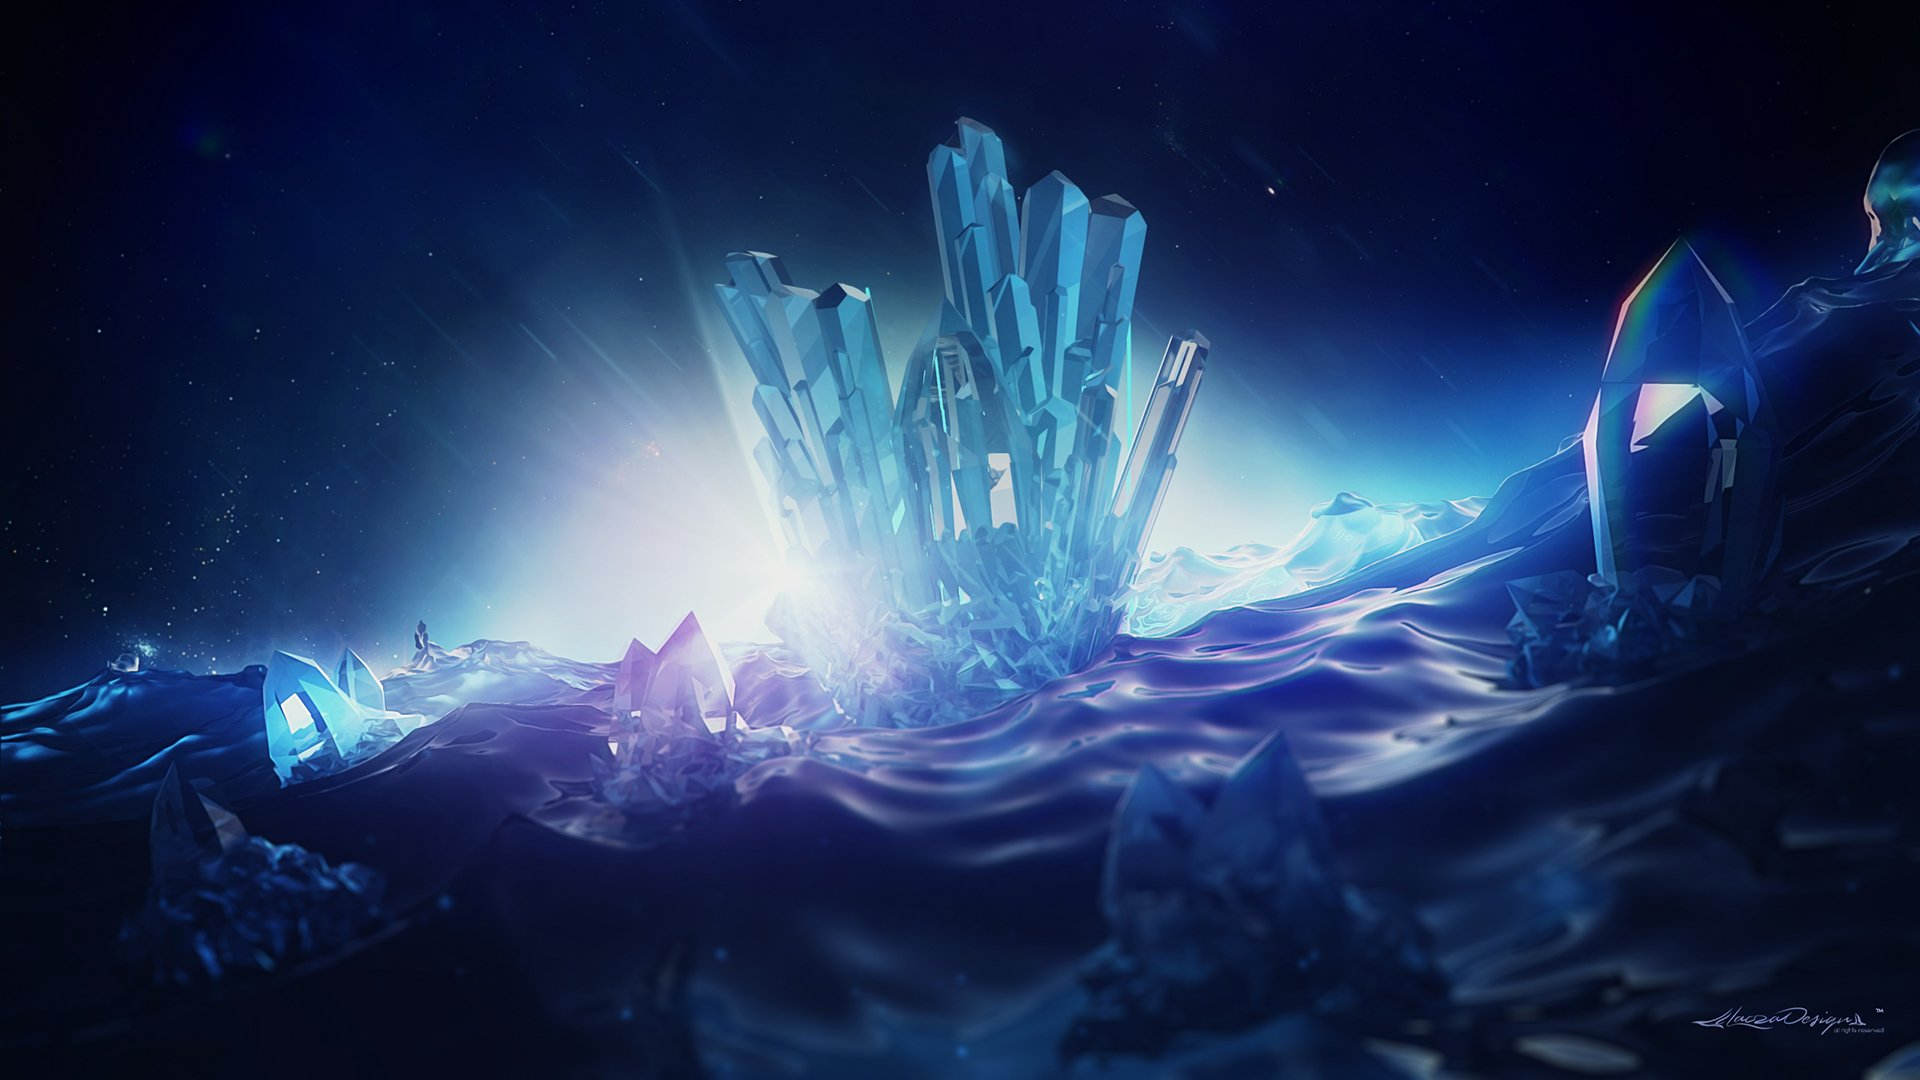 Artistic - Crystal  3D Blue Digital Art Wallpaper